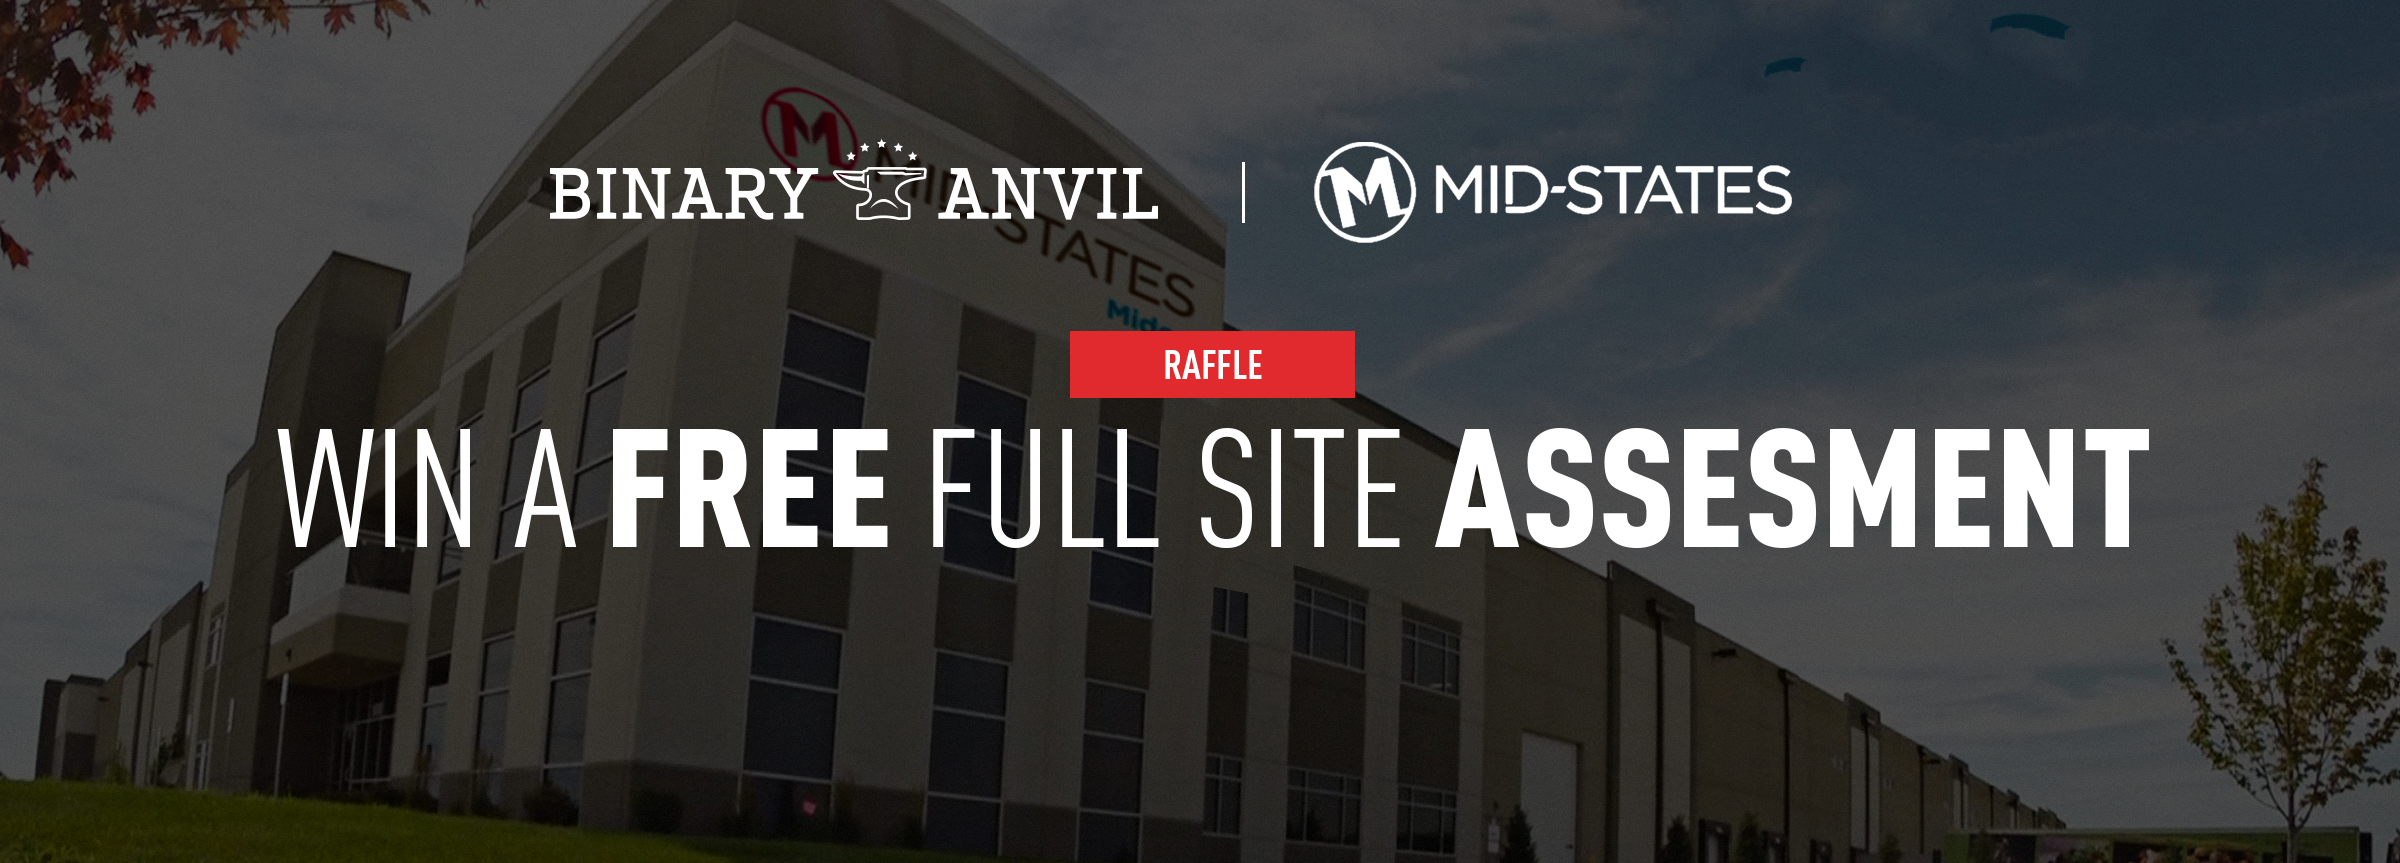 Win a free full site assessment banner